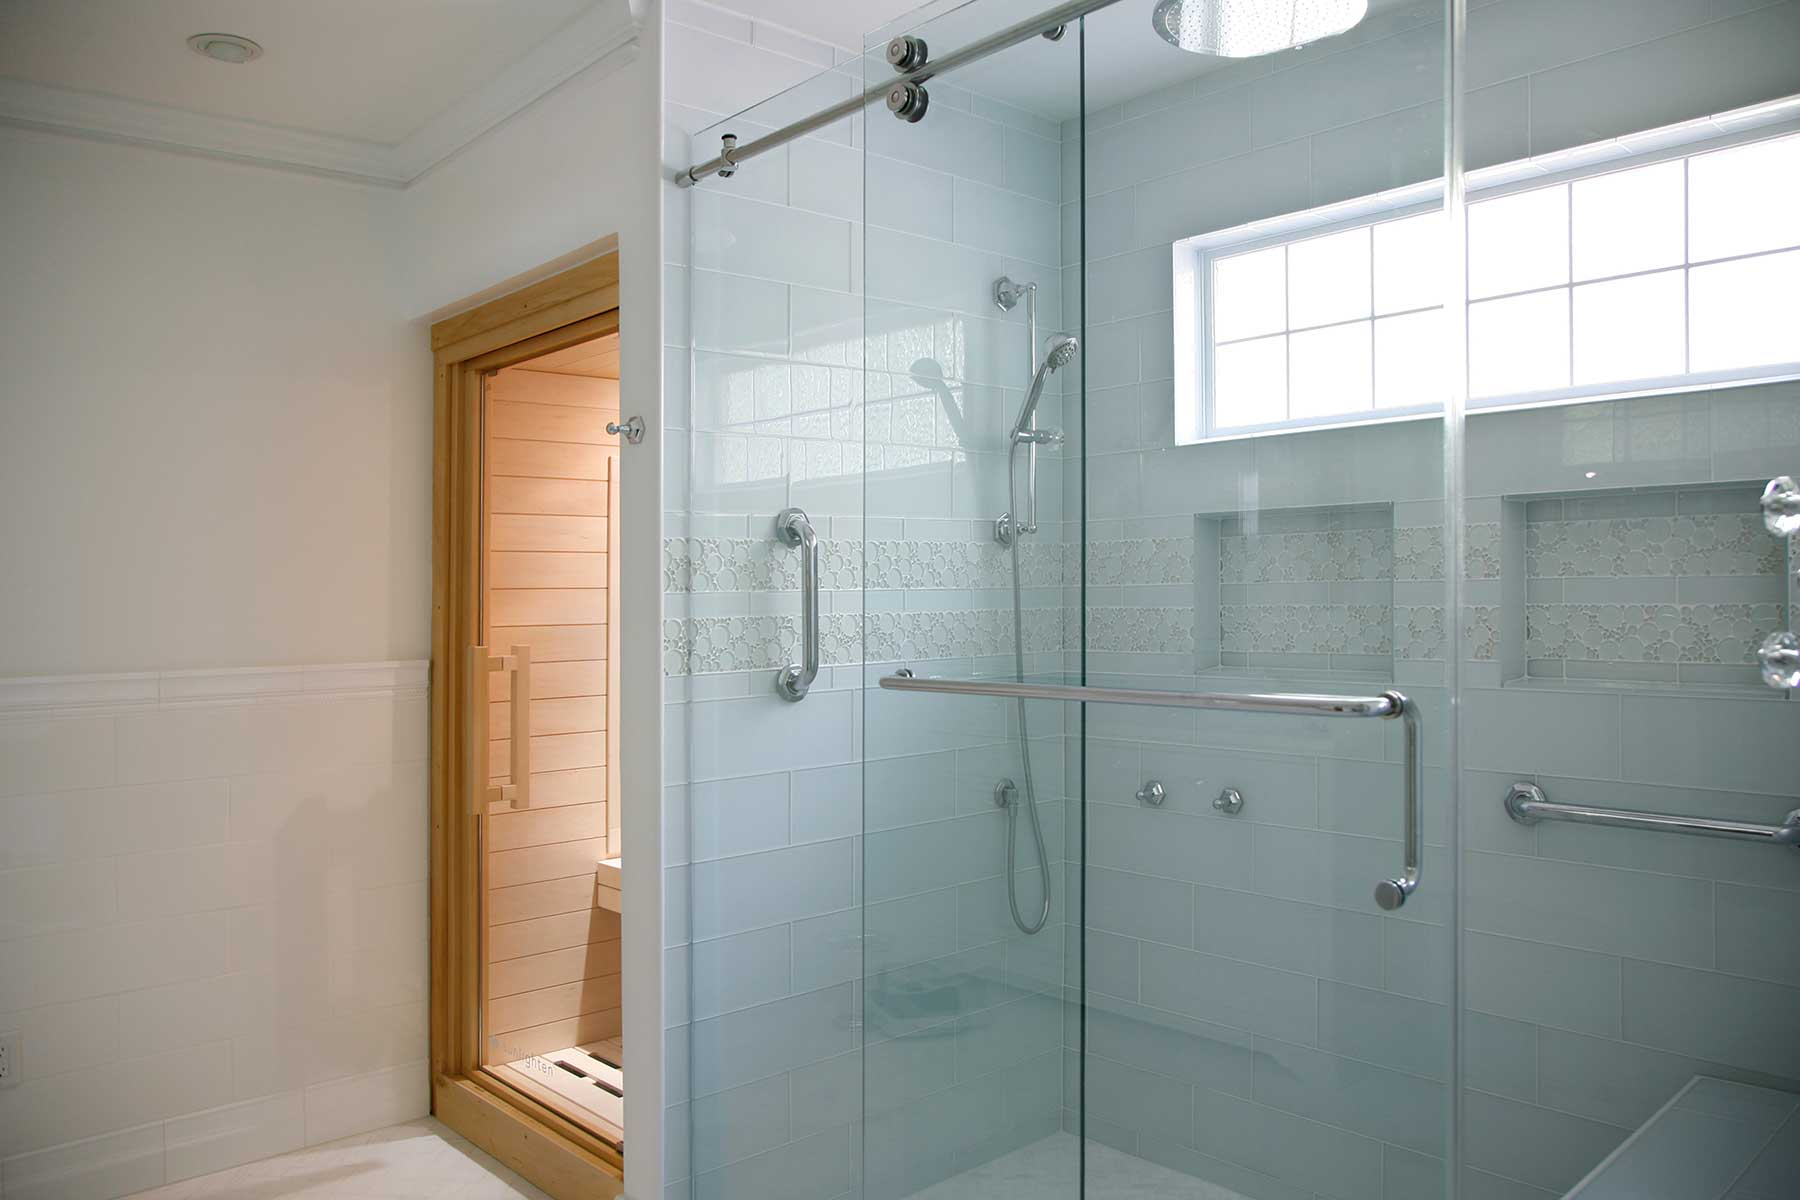 View of shower and sauna